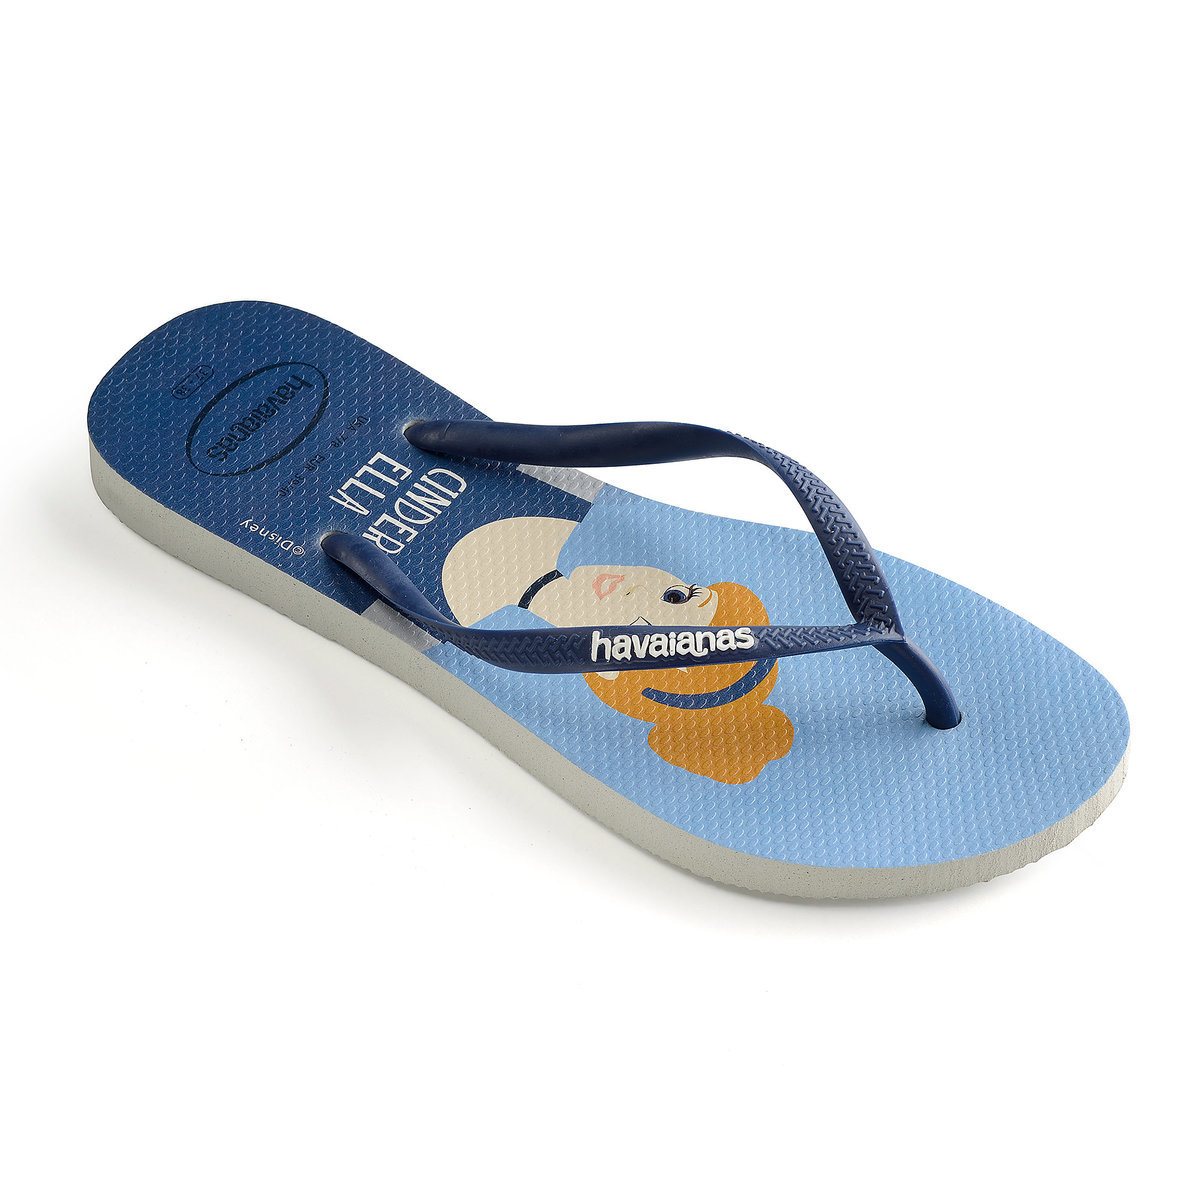 649a51a55 Product Image of Cinderella Flip Flops for Women by Havaianas   1